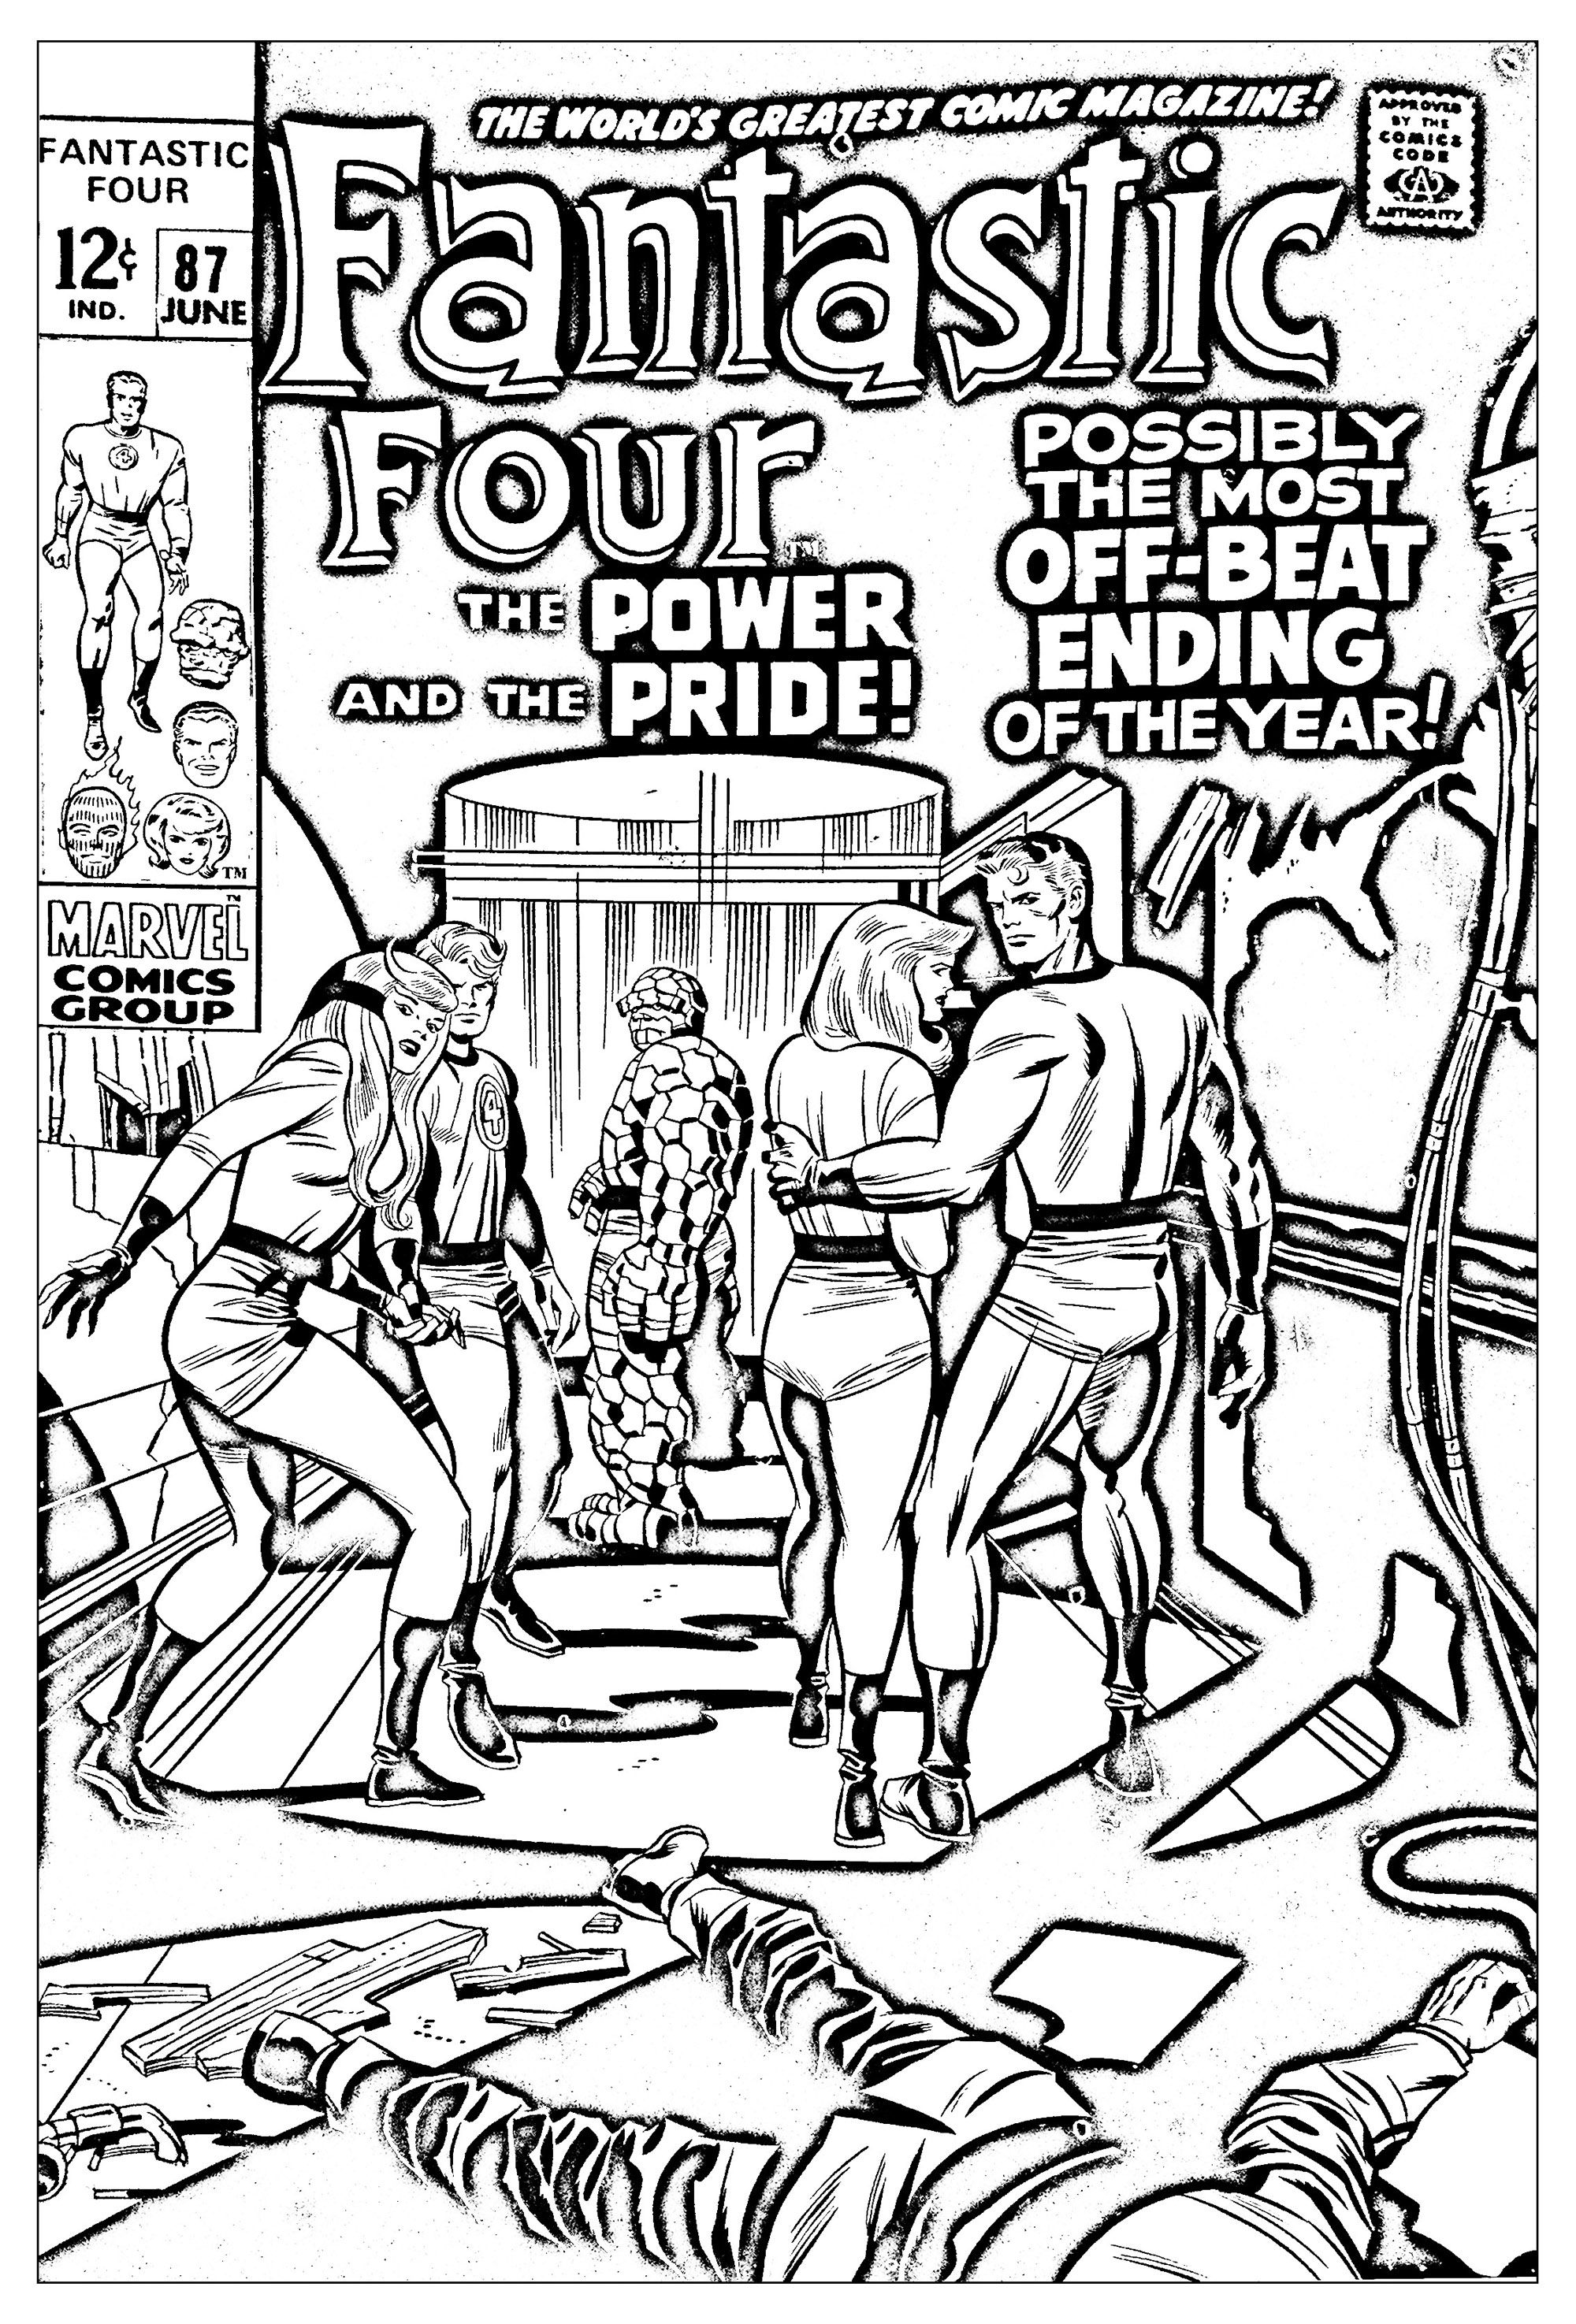 Comics Fantastic Four 1969 From The Gallery Books